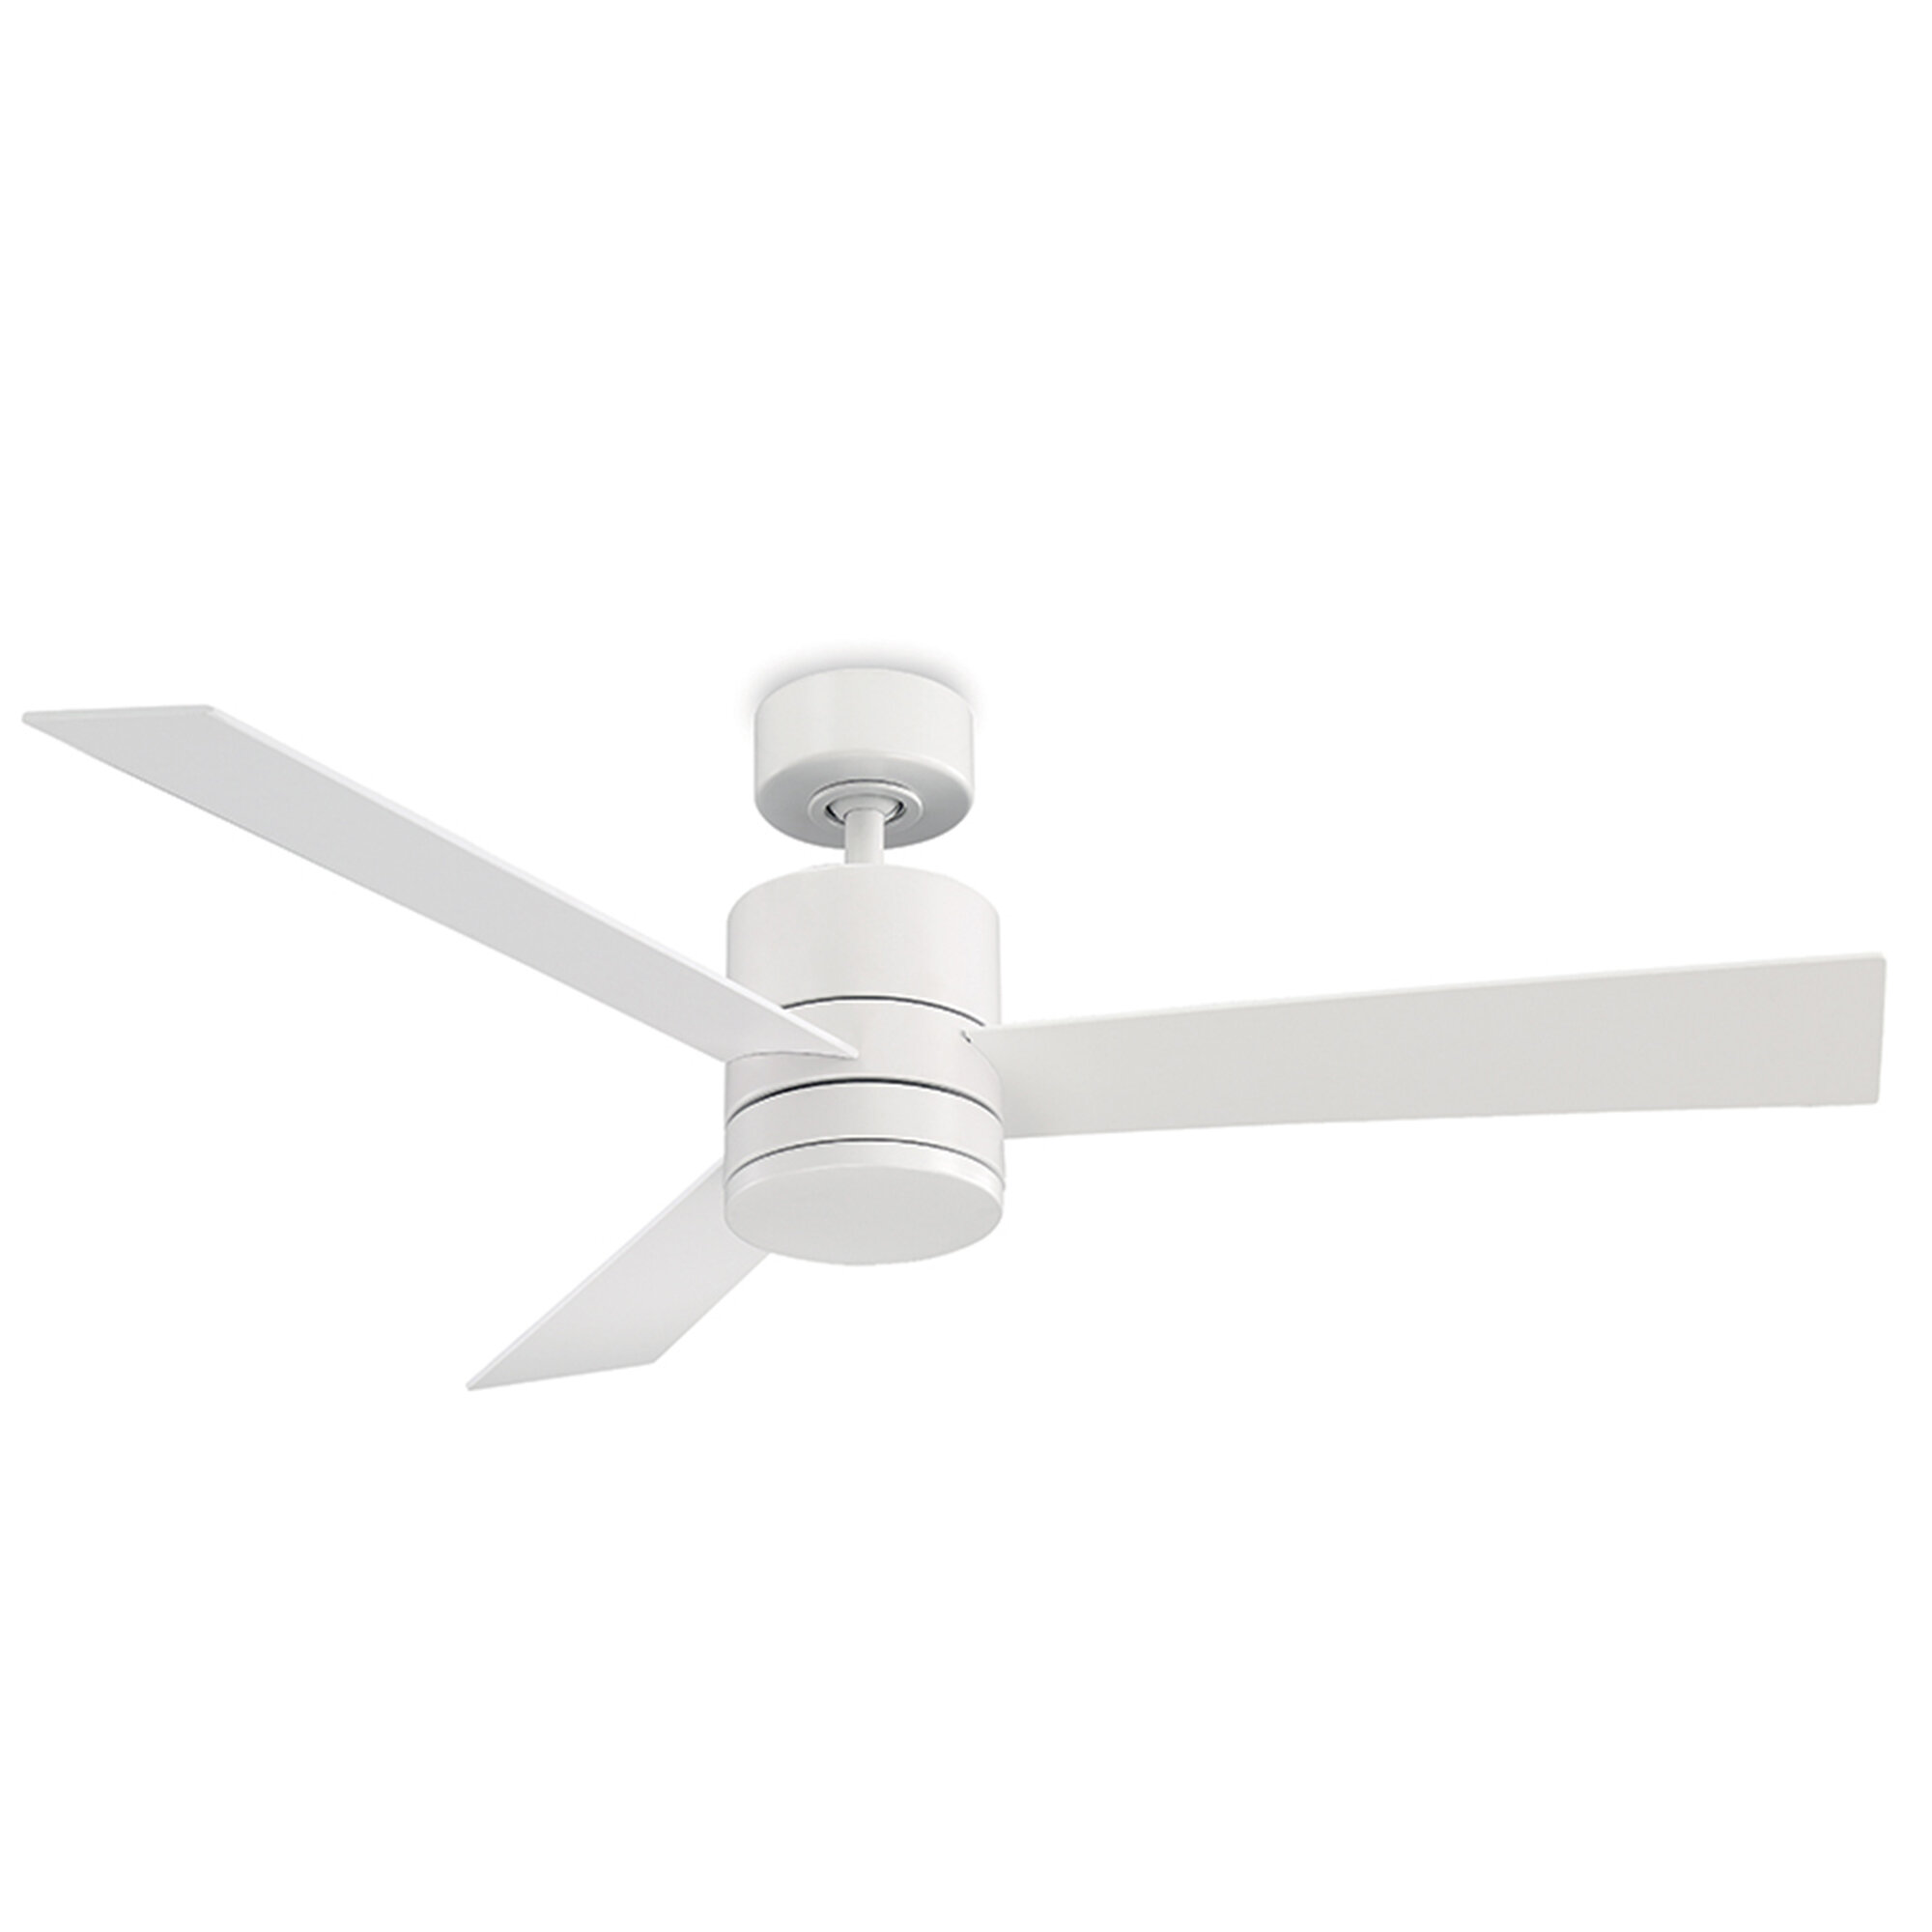 Modern Forms 52 Axis 3 Blade Outdoor Led Smart Standard Ceiling Fan With Remote Control And Light Kit Included Reviews Wayfair